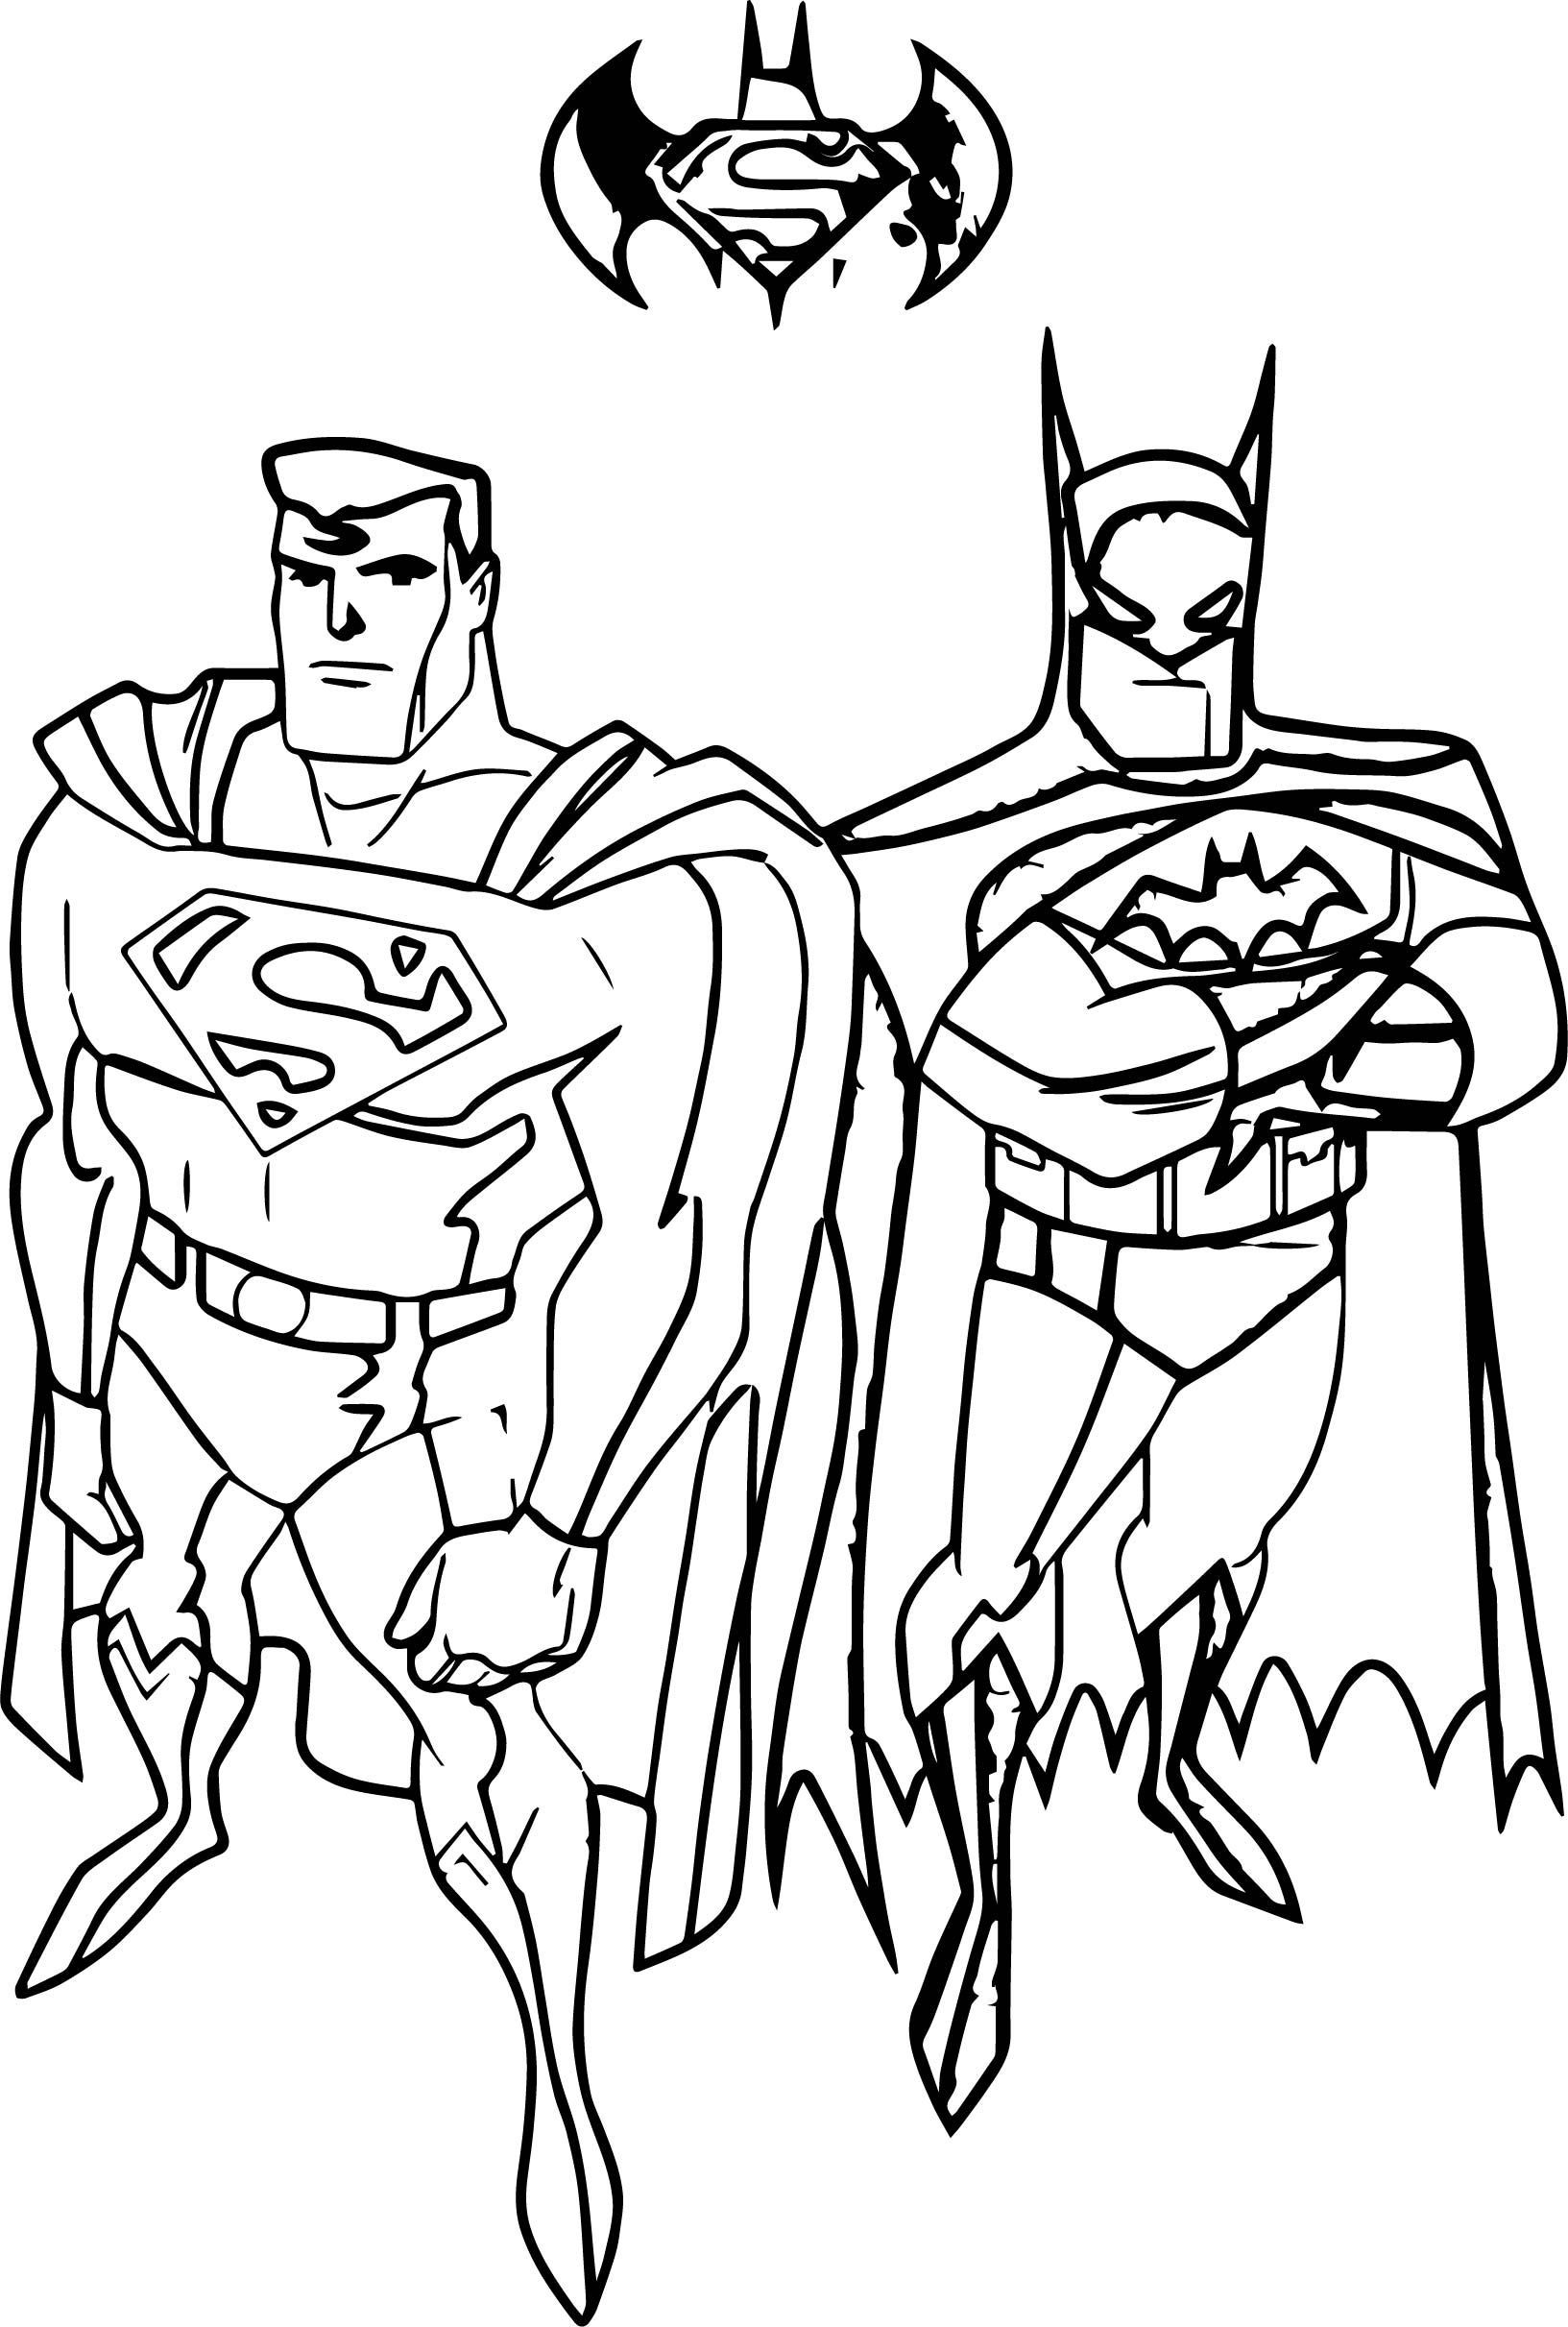 Superman Halloween Coloring Pages Coloring Pages Allow Kids To Accompany Their Favori Superman Coloring Pages Superhero Coloring Pages Batman Coloring Pages